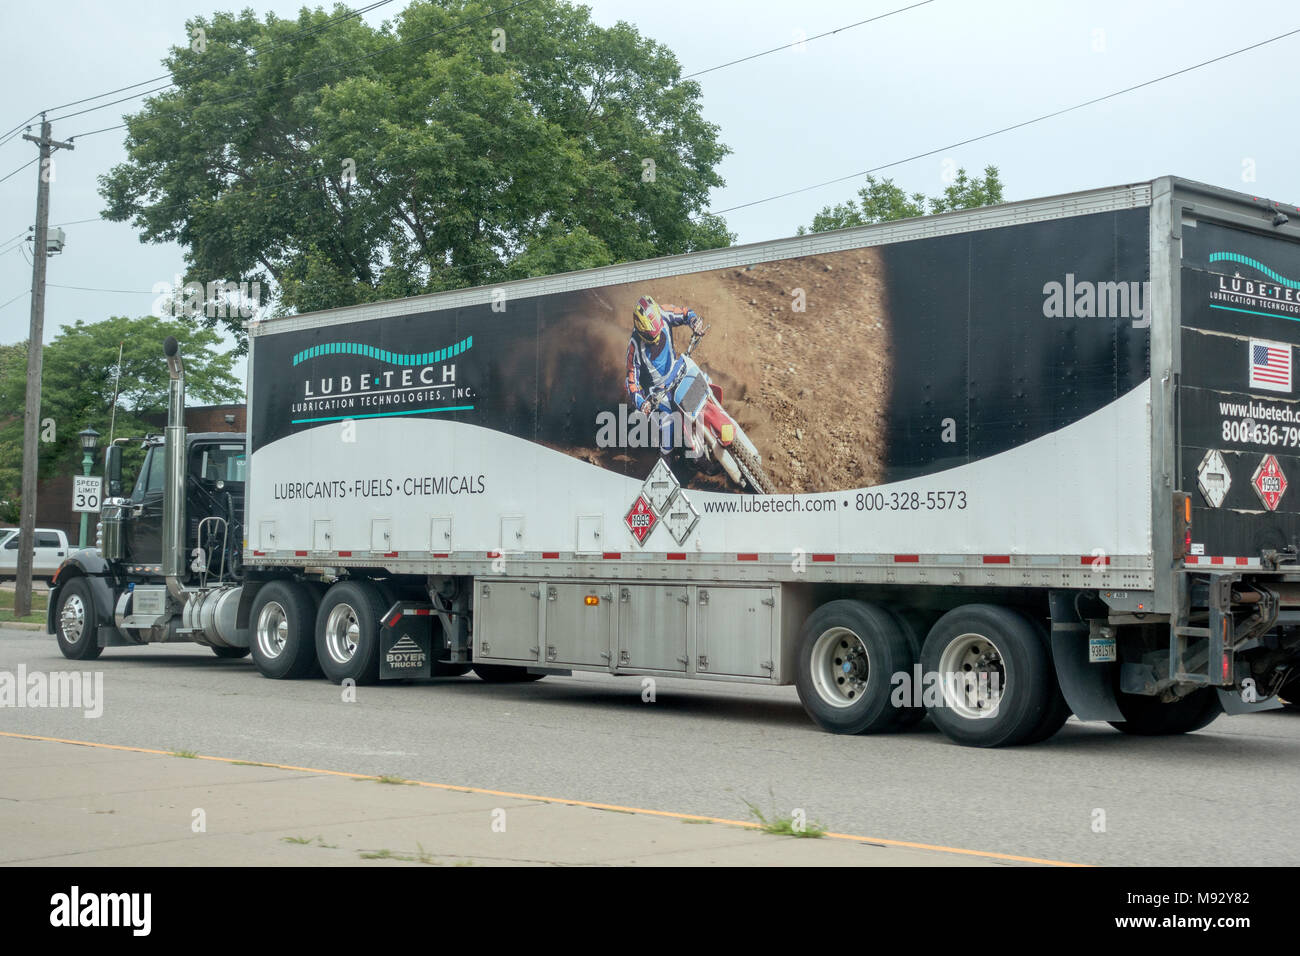 Image of a dirt bike off-road motorcycle in action on the side of a Lube -Teck 18 wheeler semi-trailer truck. Minneapolis Minnesota MN USA - Stock Image